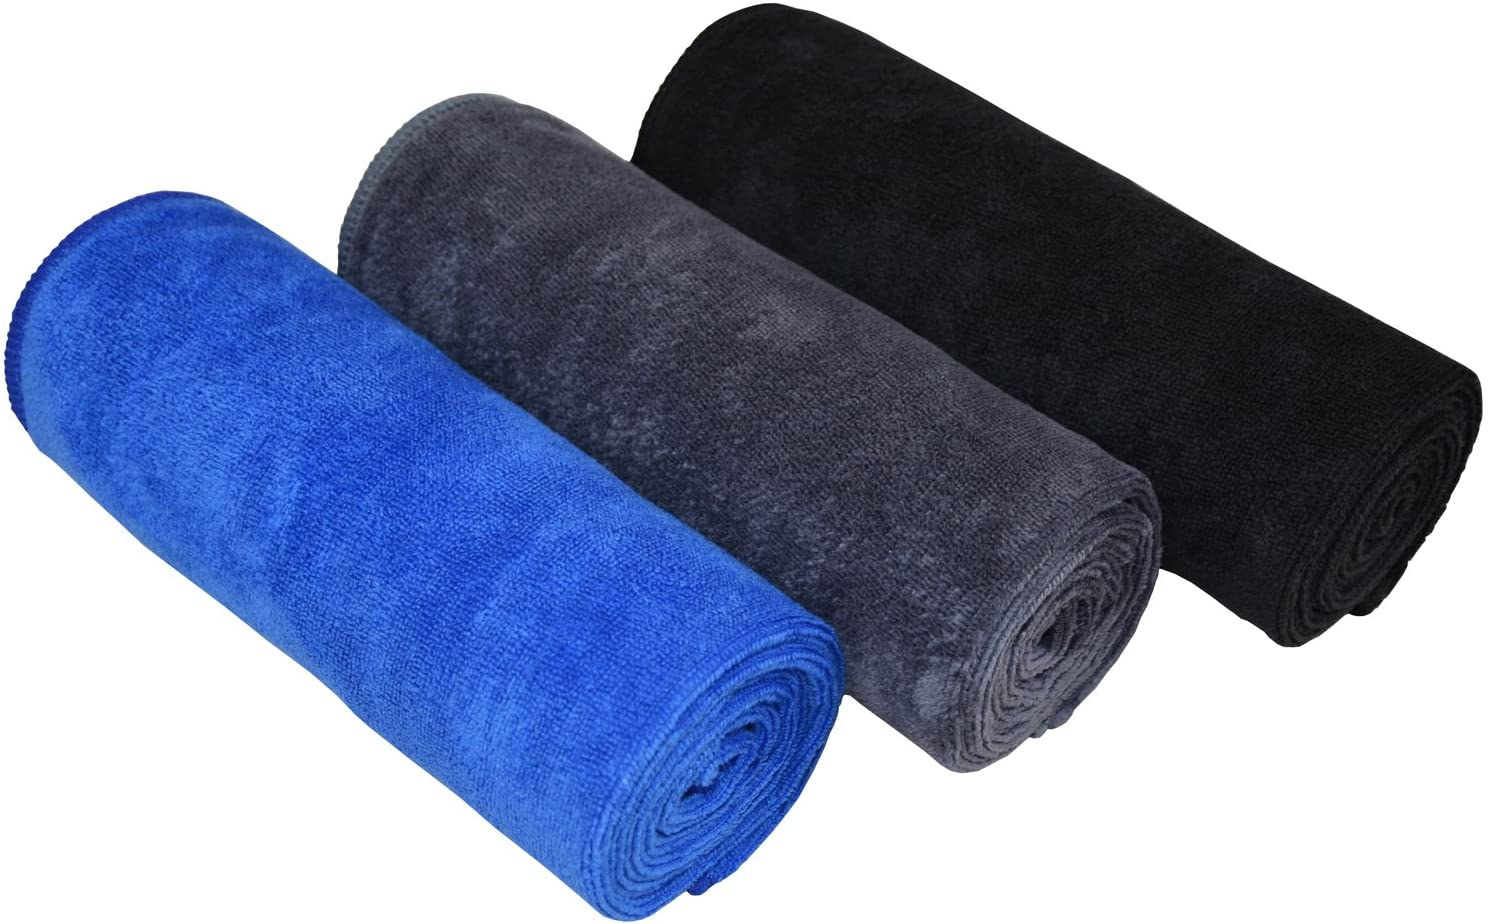 Hemoton 6pcs Soft Microfiber Towel Fast Drying Absorbent Towel for Sports Yoga Gym Fitness and More 30x30cm Mixed Color